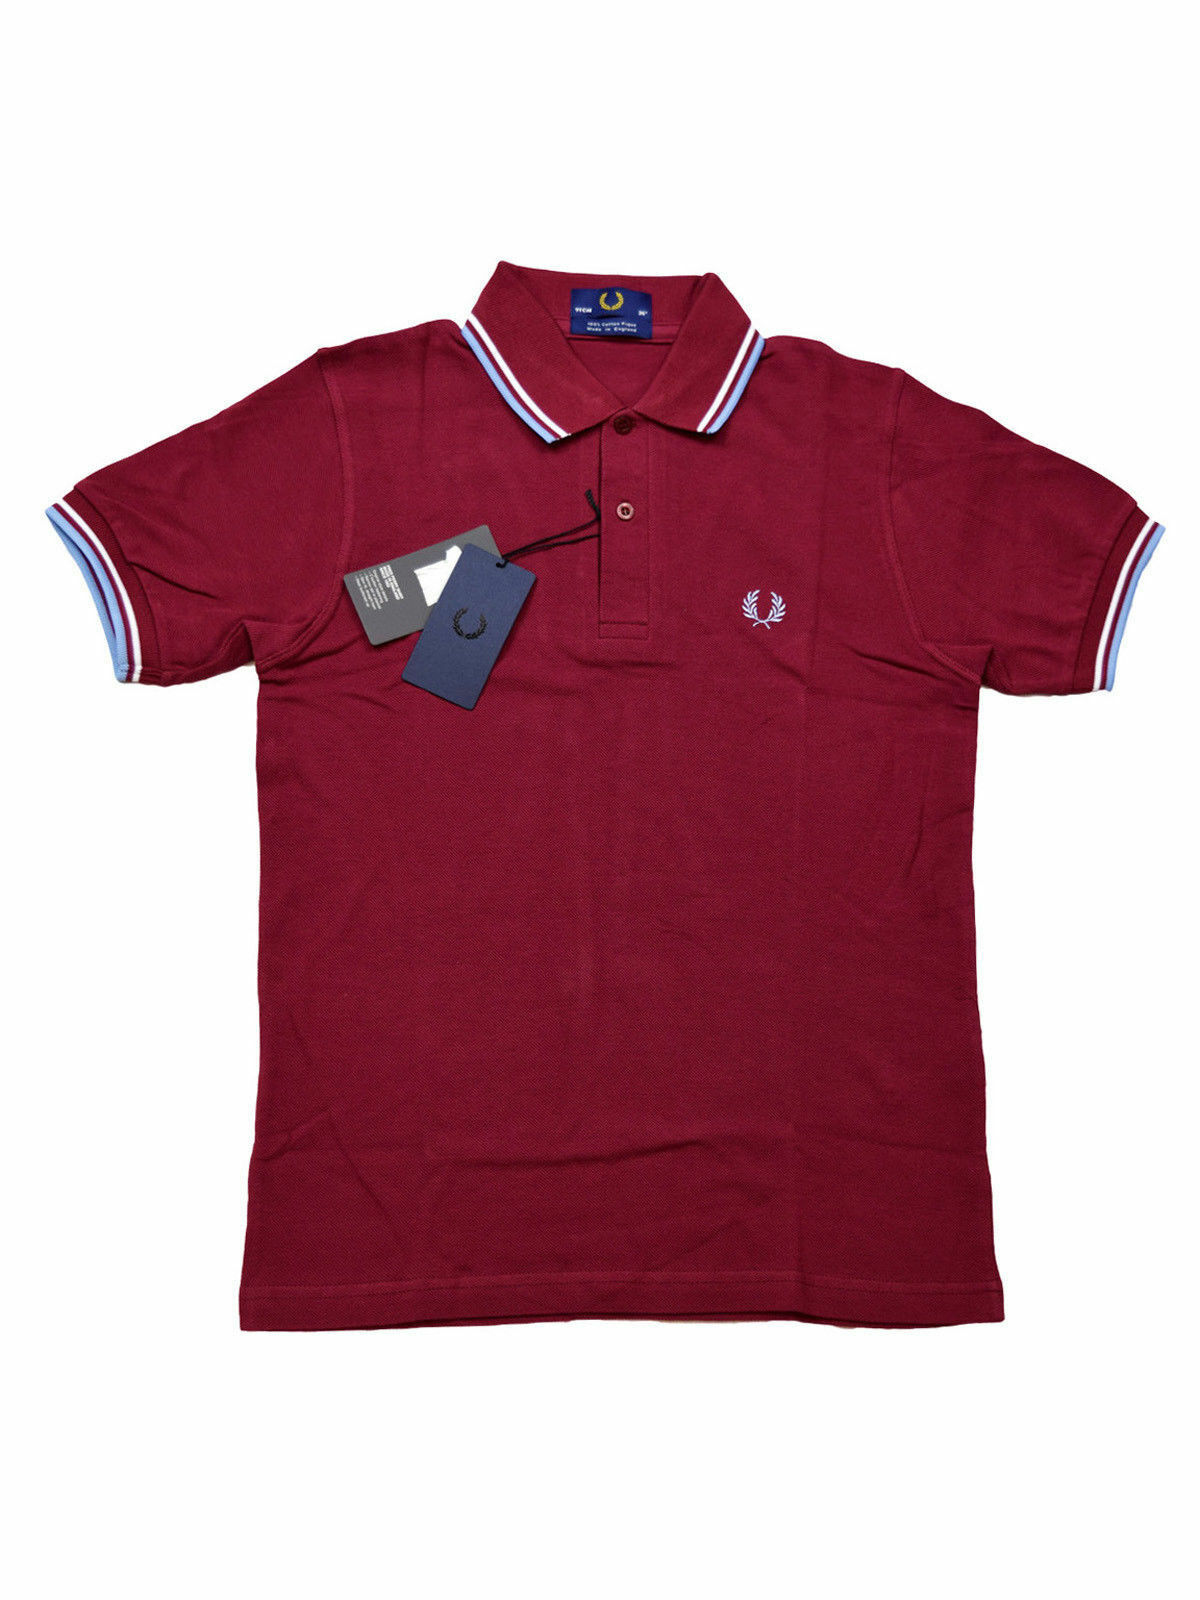 Fred Perry Polo Shirt M12 106 Made In England Bordeaux   white   Hellblue   5444